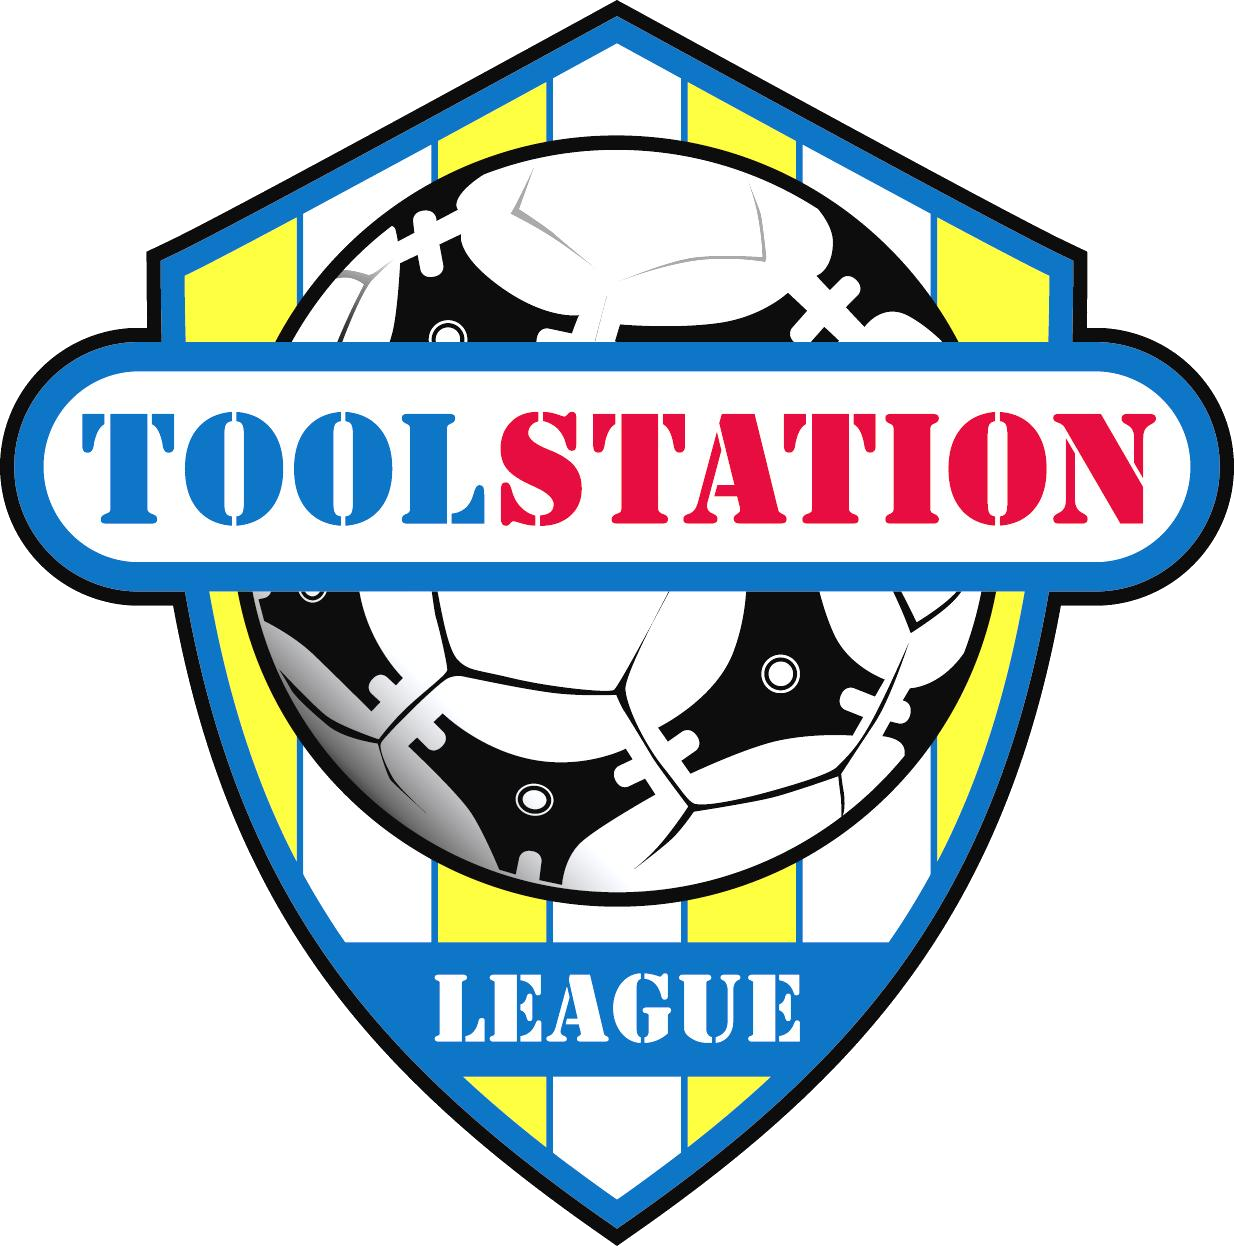 Toolstation Western League